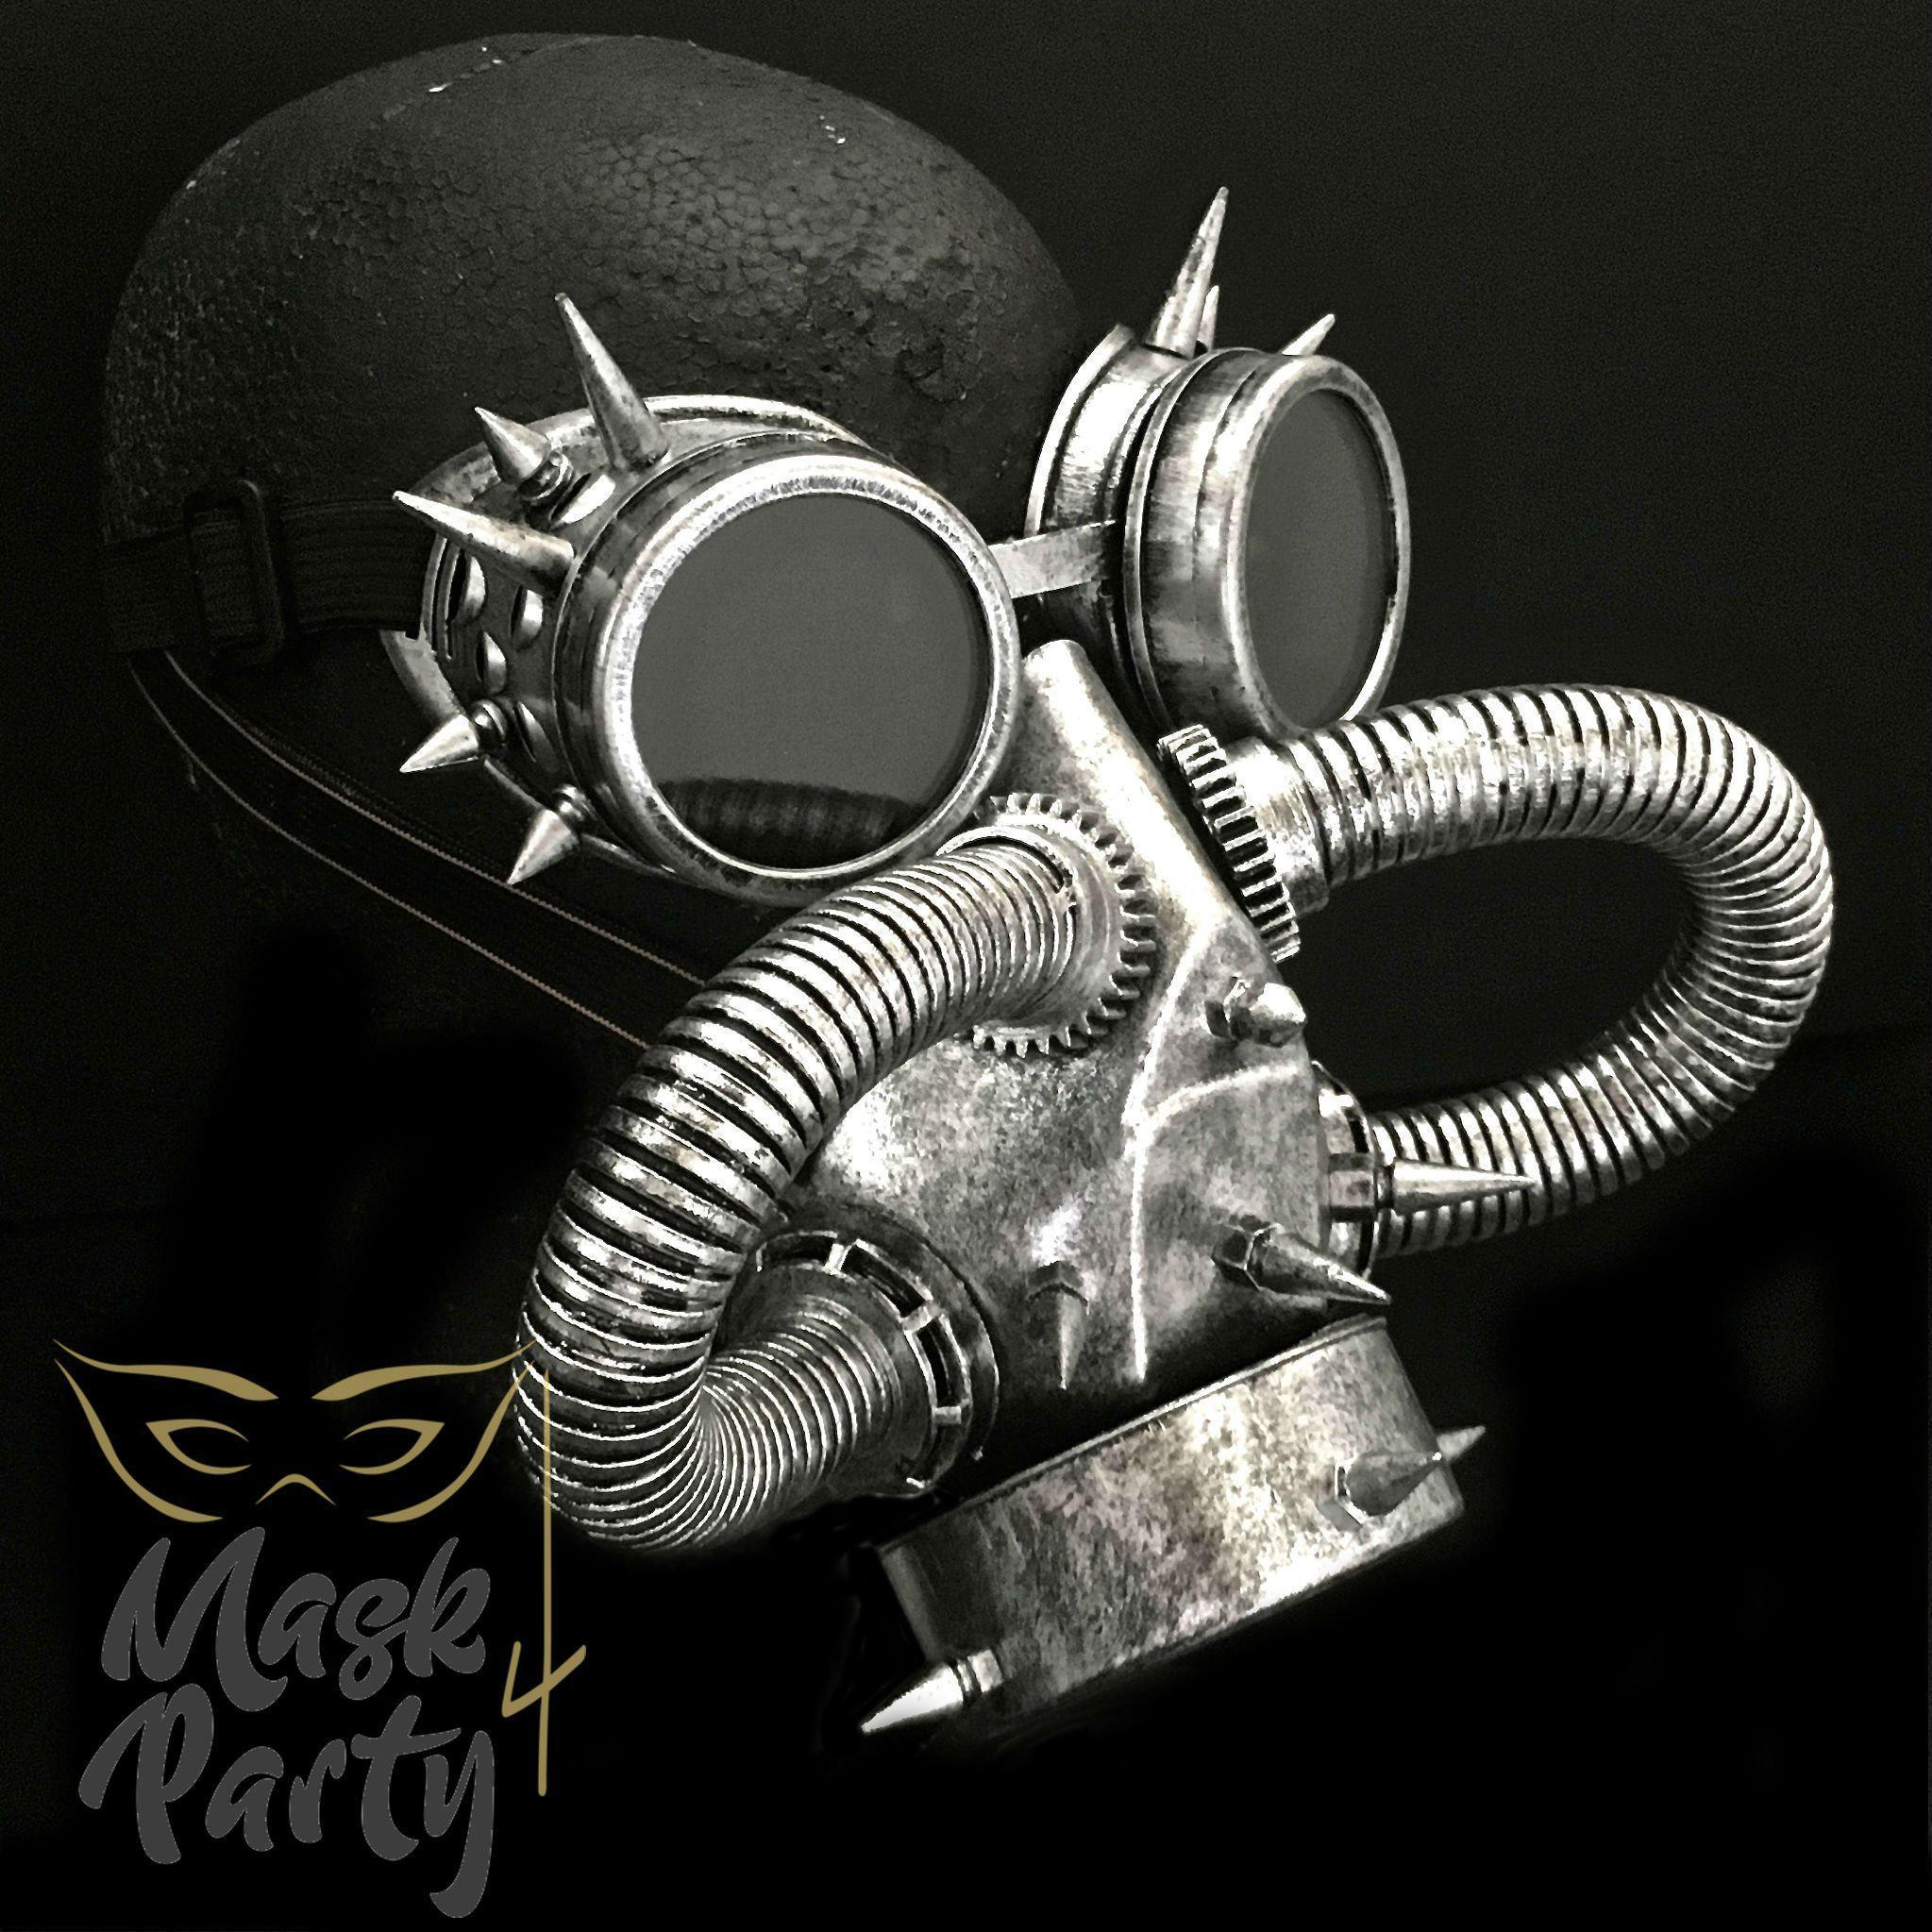 Steampunk Mask - Rivet Goggles & Respirator - Silver/Black - Mask4Party